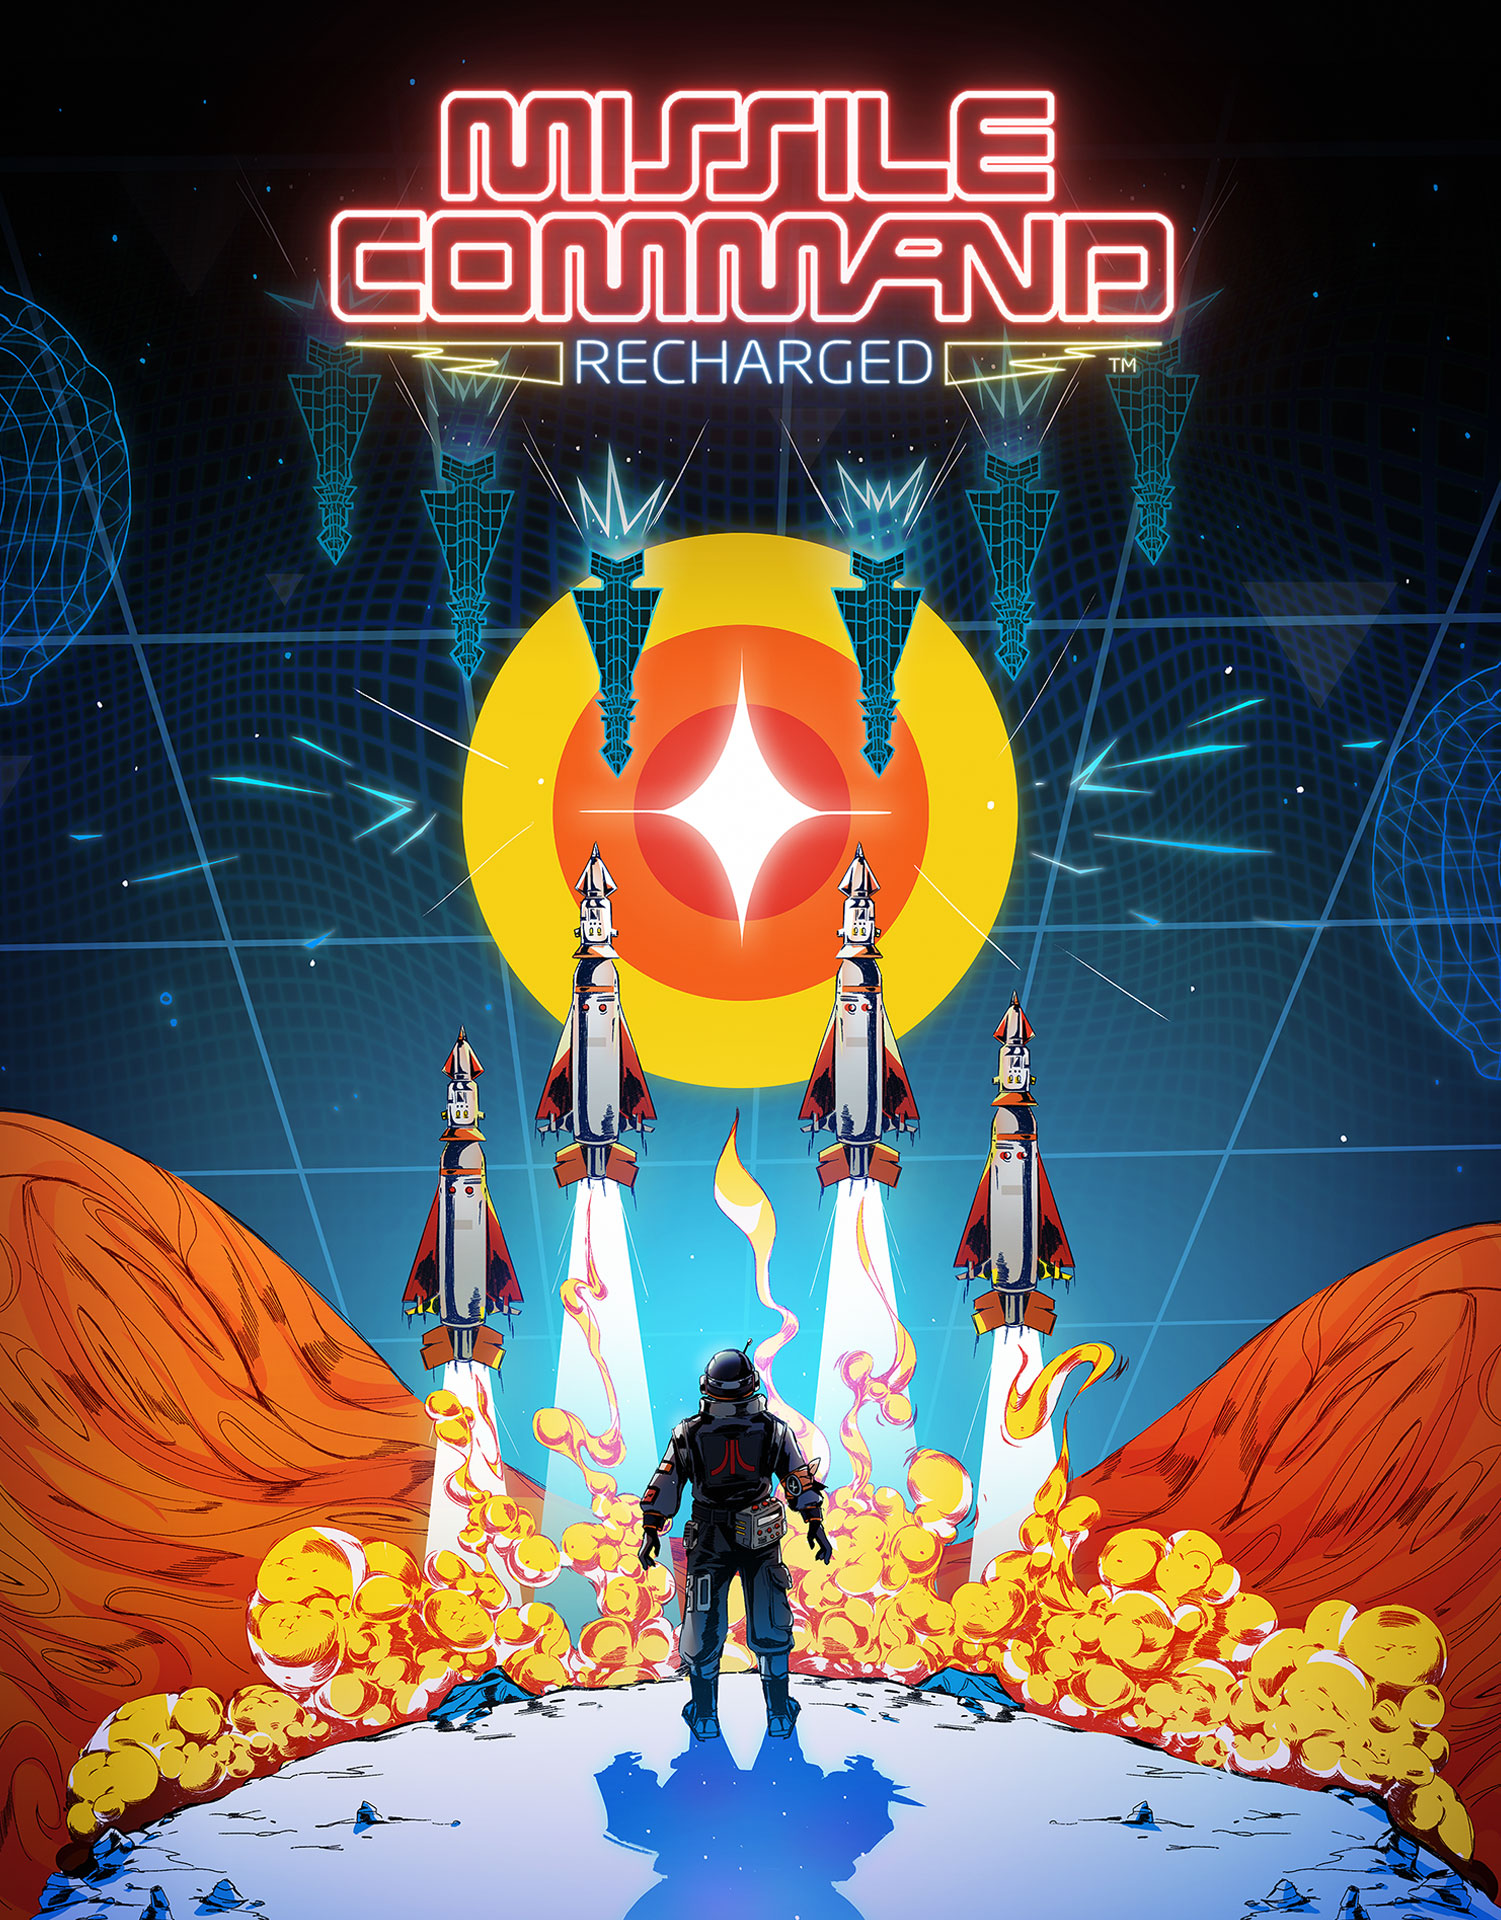 Missile Command Recharged - Poster